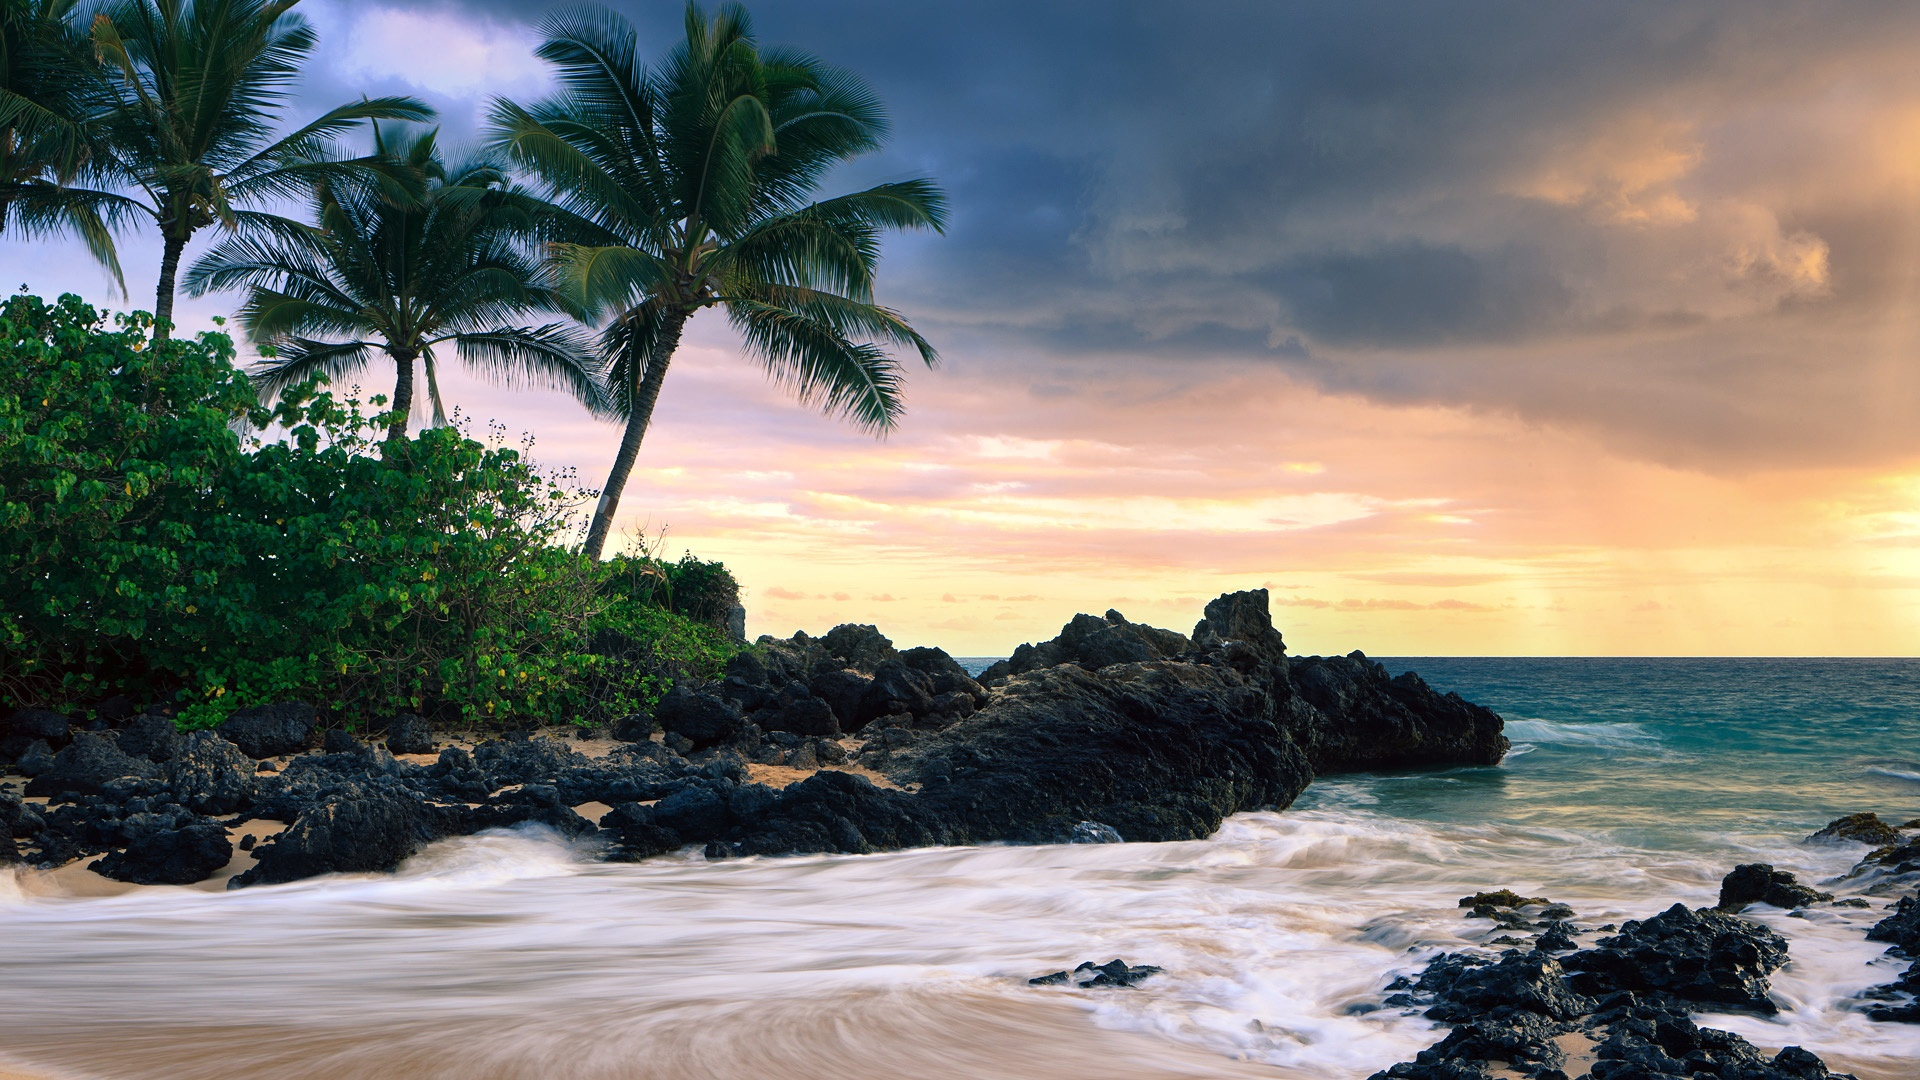 Tropical HD Wallpapers Backgrounds Wallpaper